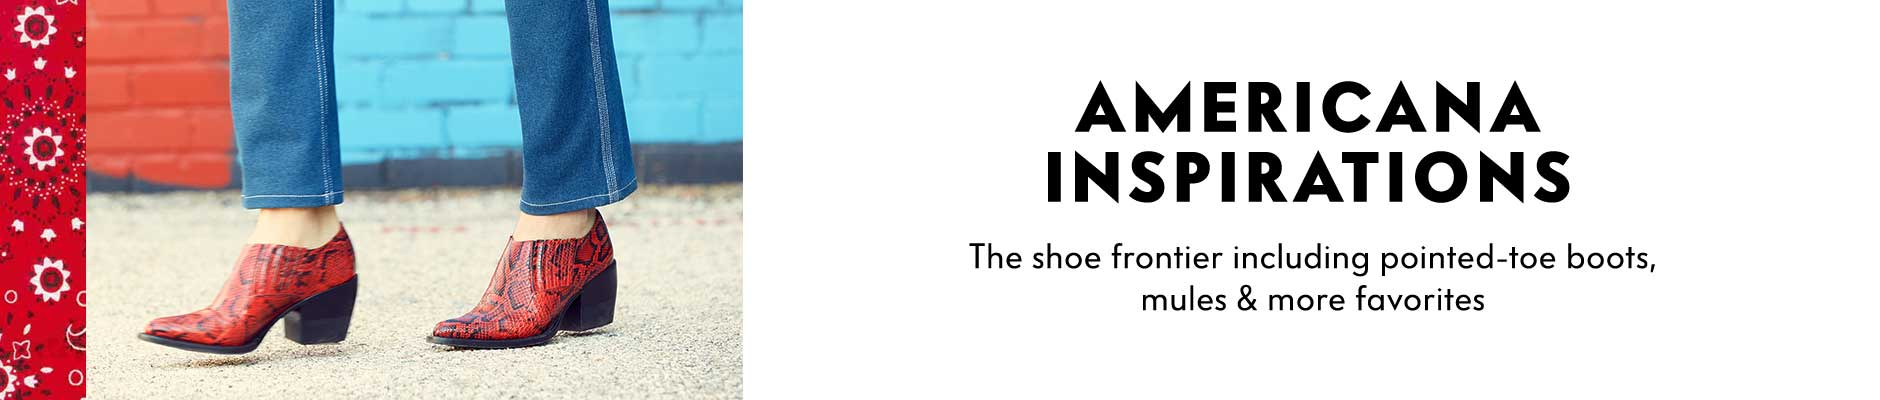 Americana Inspirations - The shoe frontier including pointed-toe boots, mules & more favorites